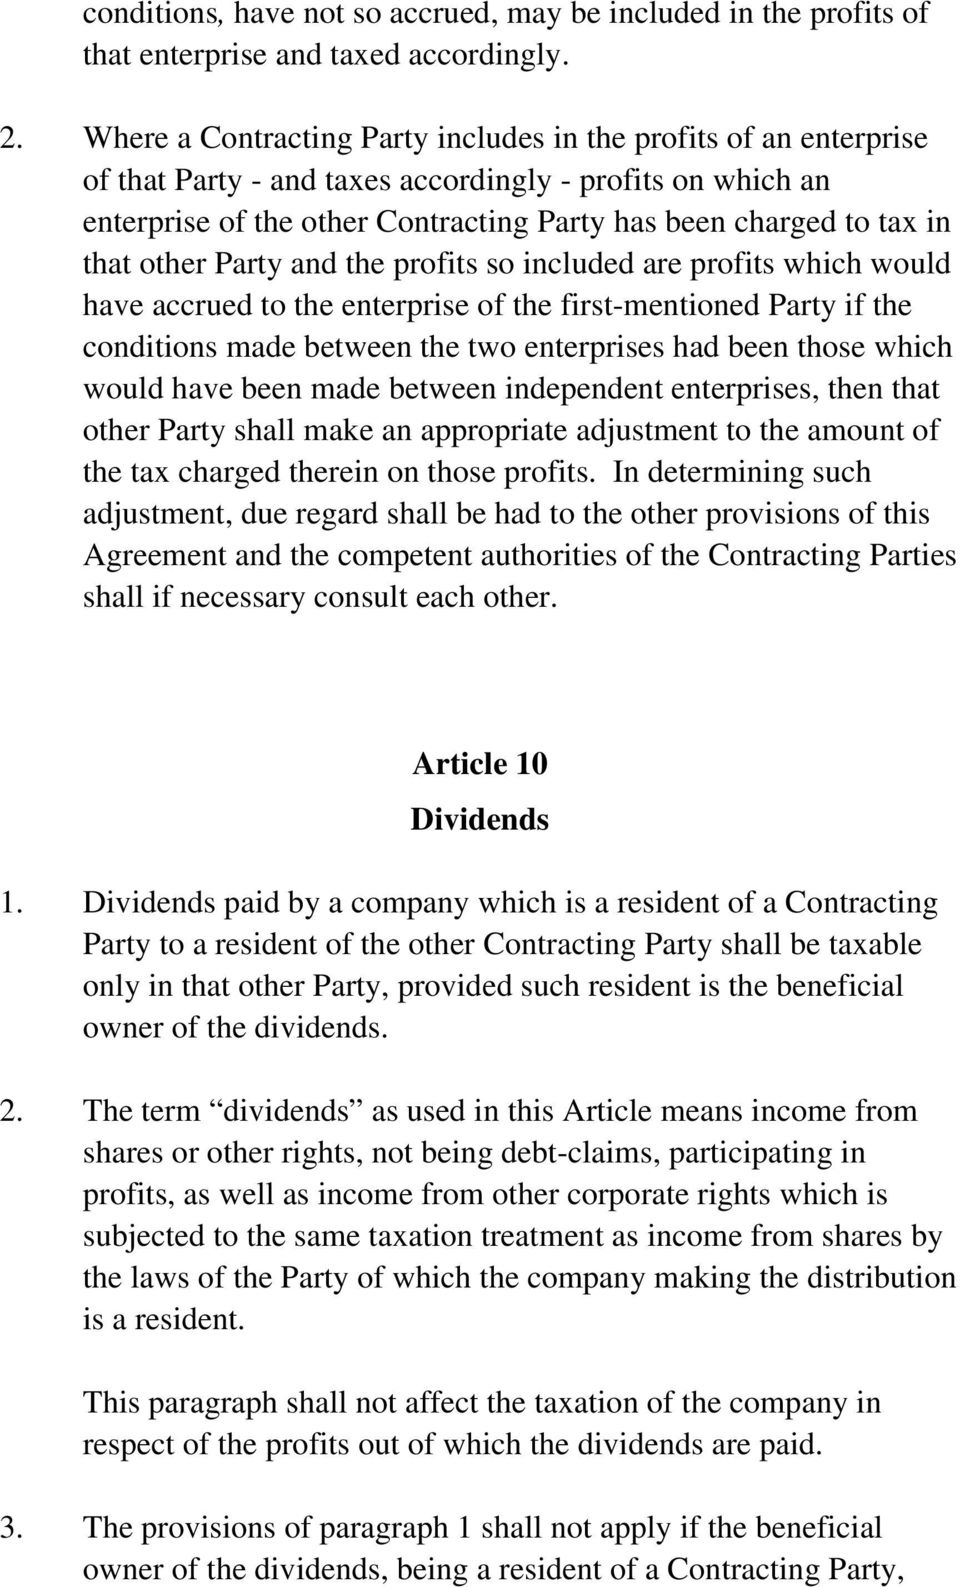 that other Party and the profits so included are profits which would have accrued to the enterprise of the first-mentioned Party if the conditions made between the two enterprises had been those